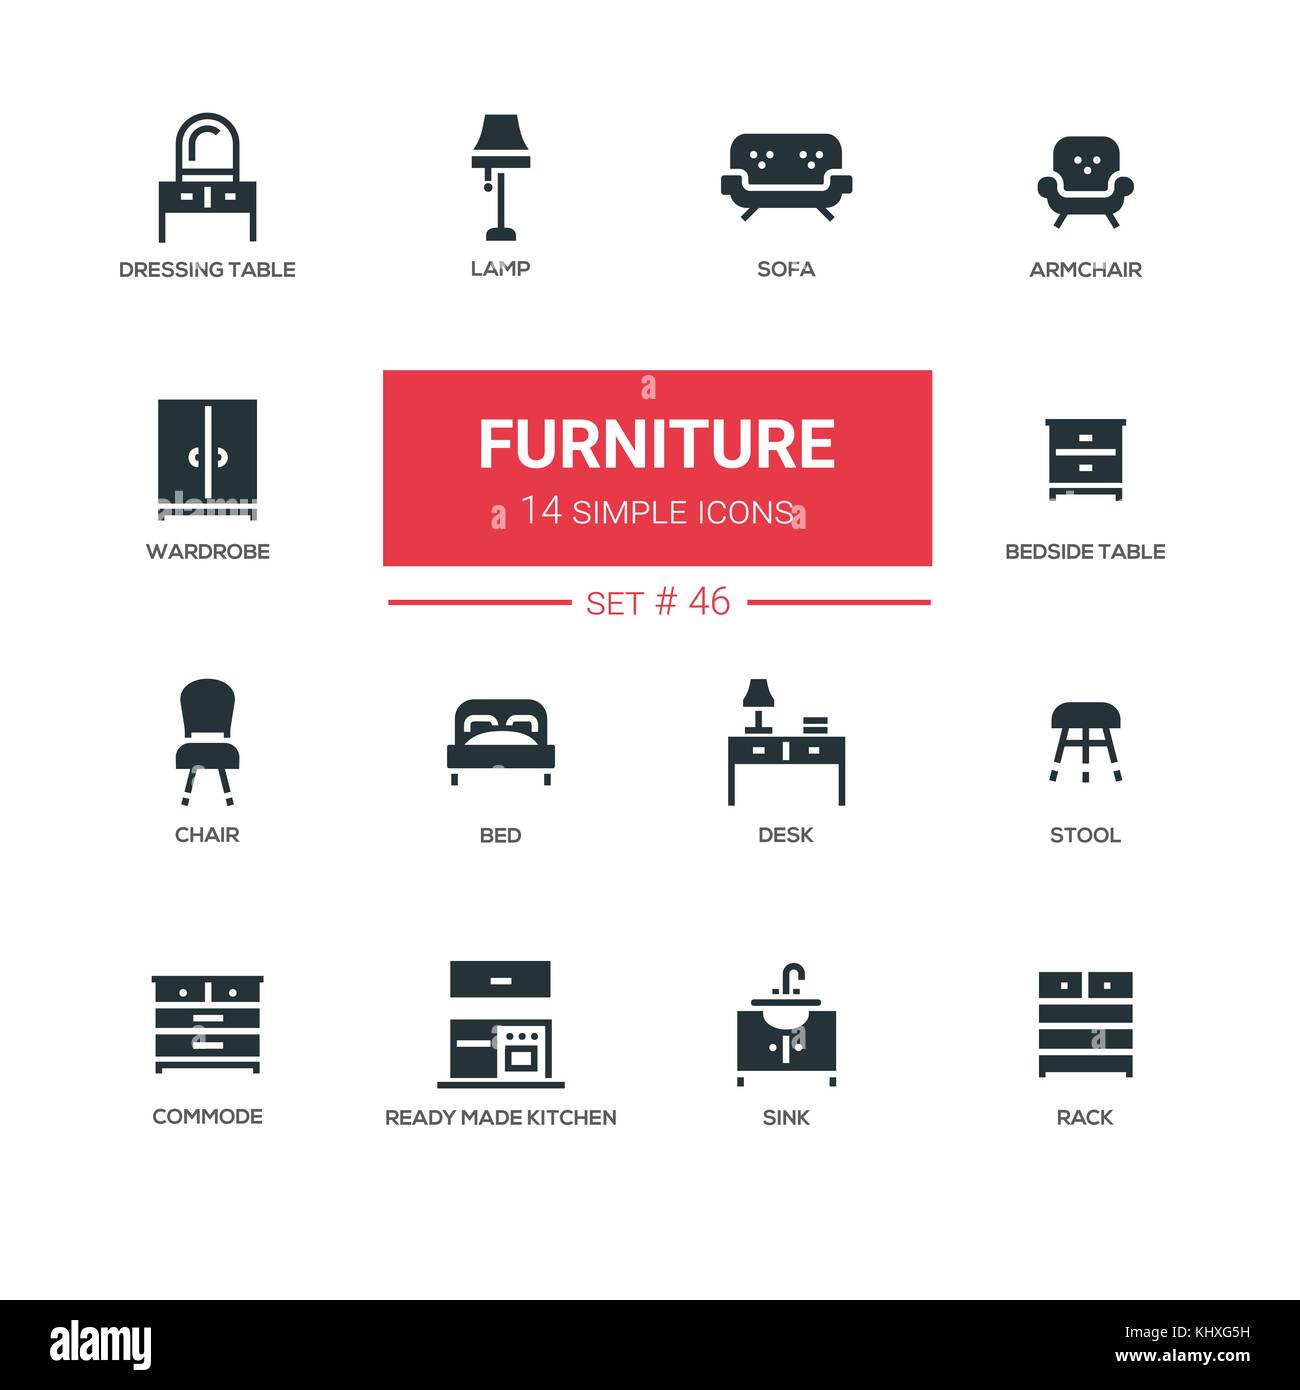 chair design icons husk replica furniture line set stock vector art illustration